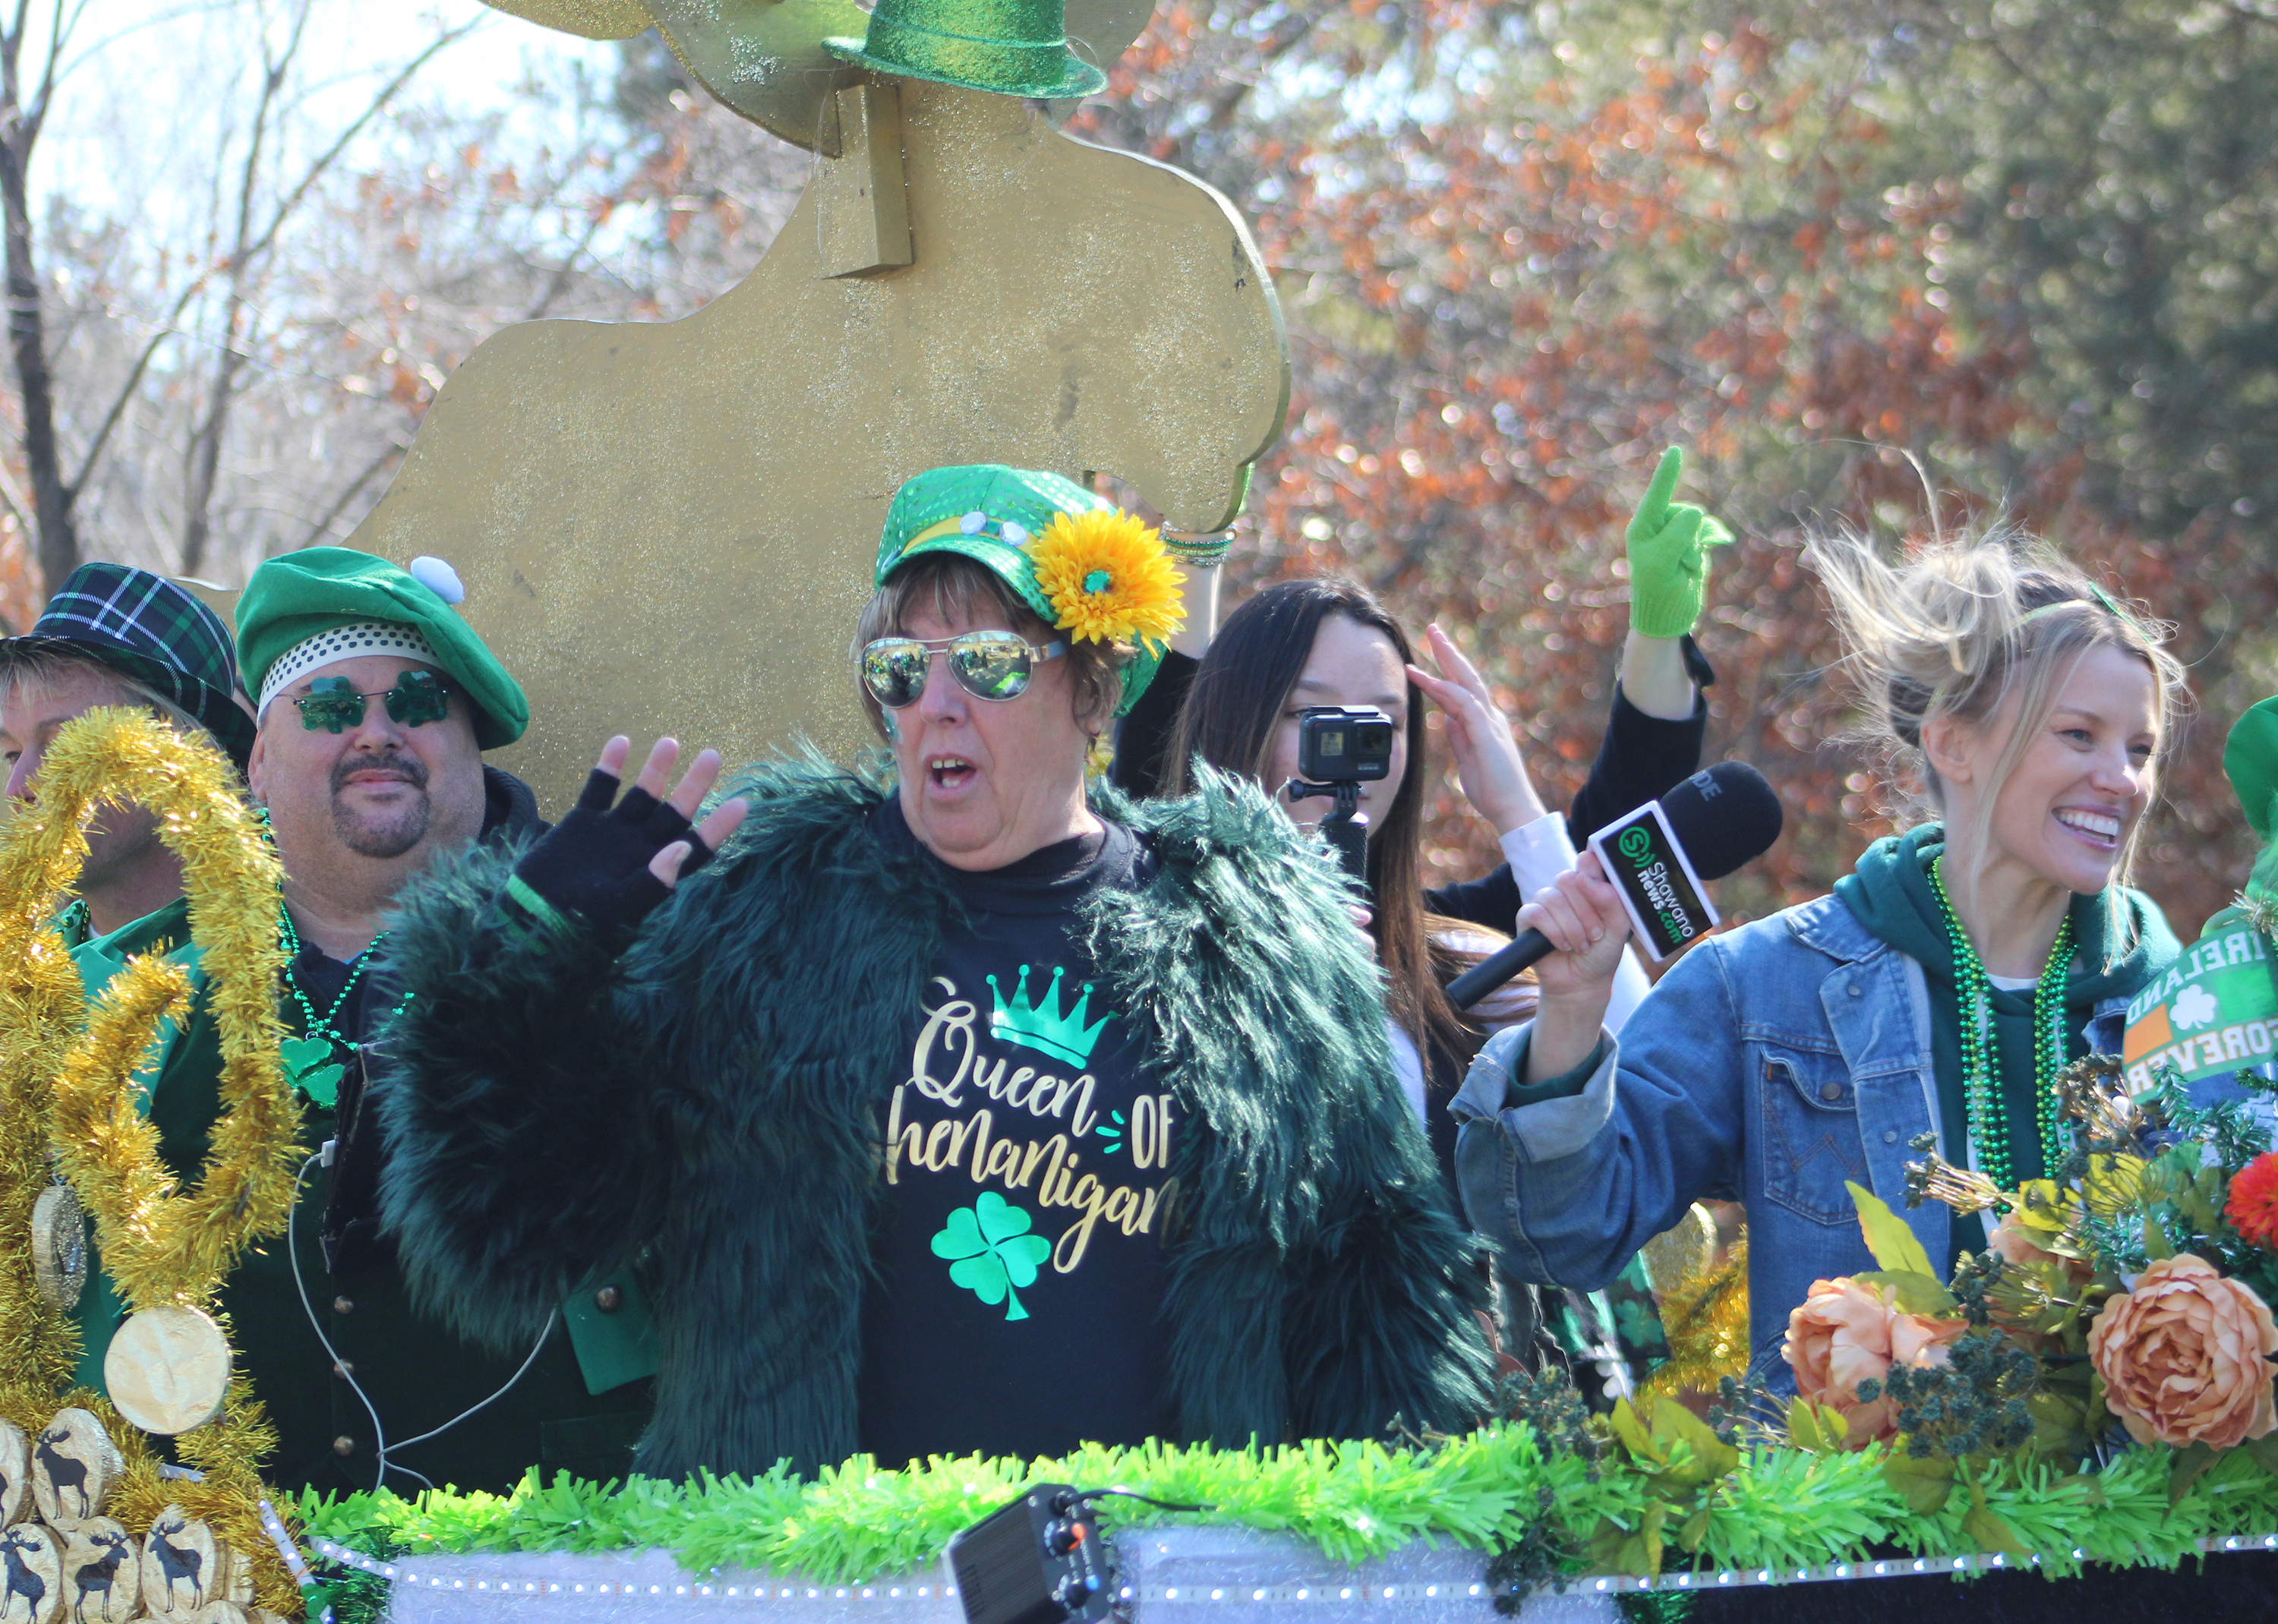 """It's unclear whether shenanigans were going on aboard this float from Just Moose'n Around, despite one of the passengers wearing a shirt that said """"Queen of Shenanigans."""" What was clear was that many were having a wonderful time during the Mooseyard St. Patrick's Day Parade on March 13.(Lee Pulaski   NEW Media)"""